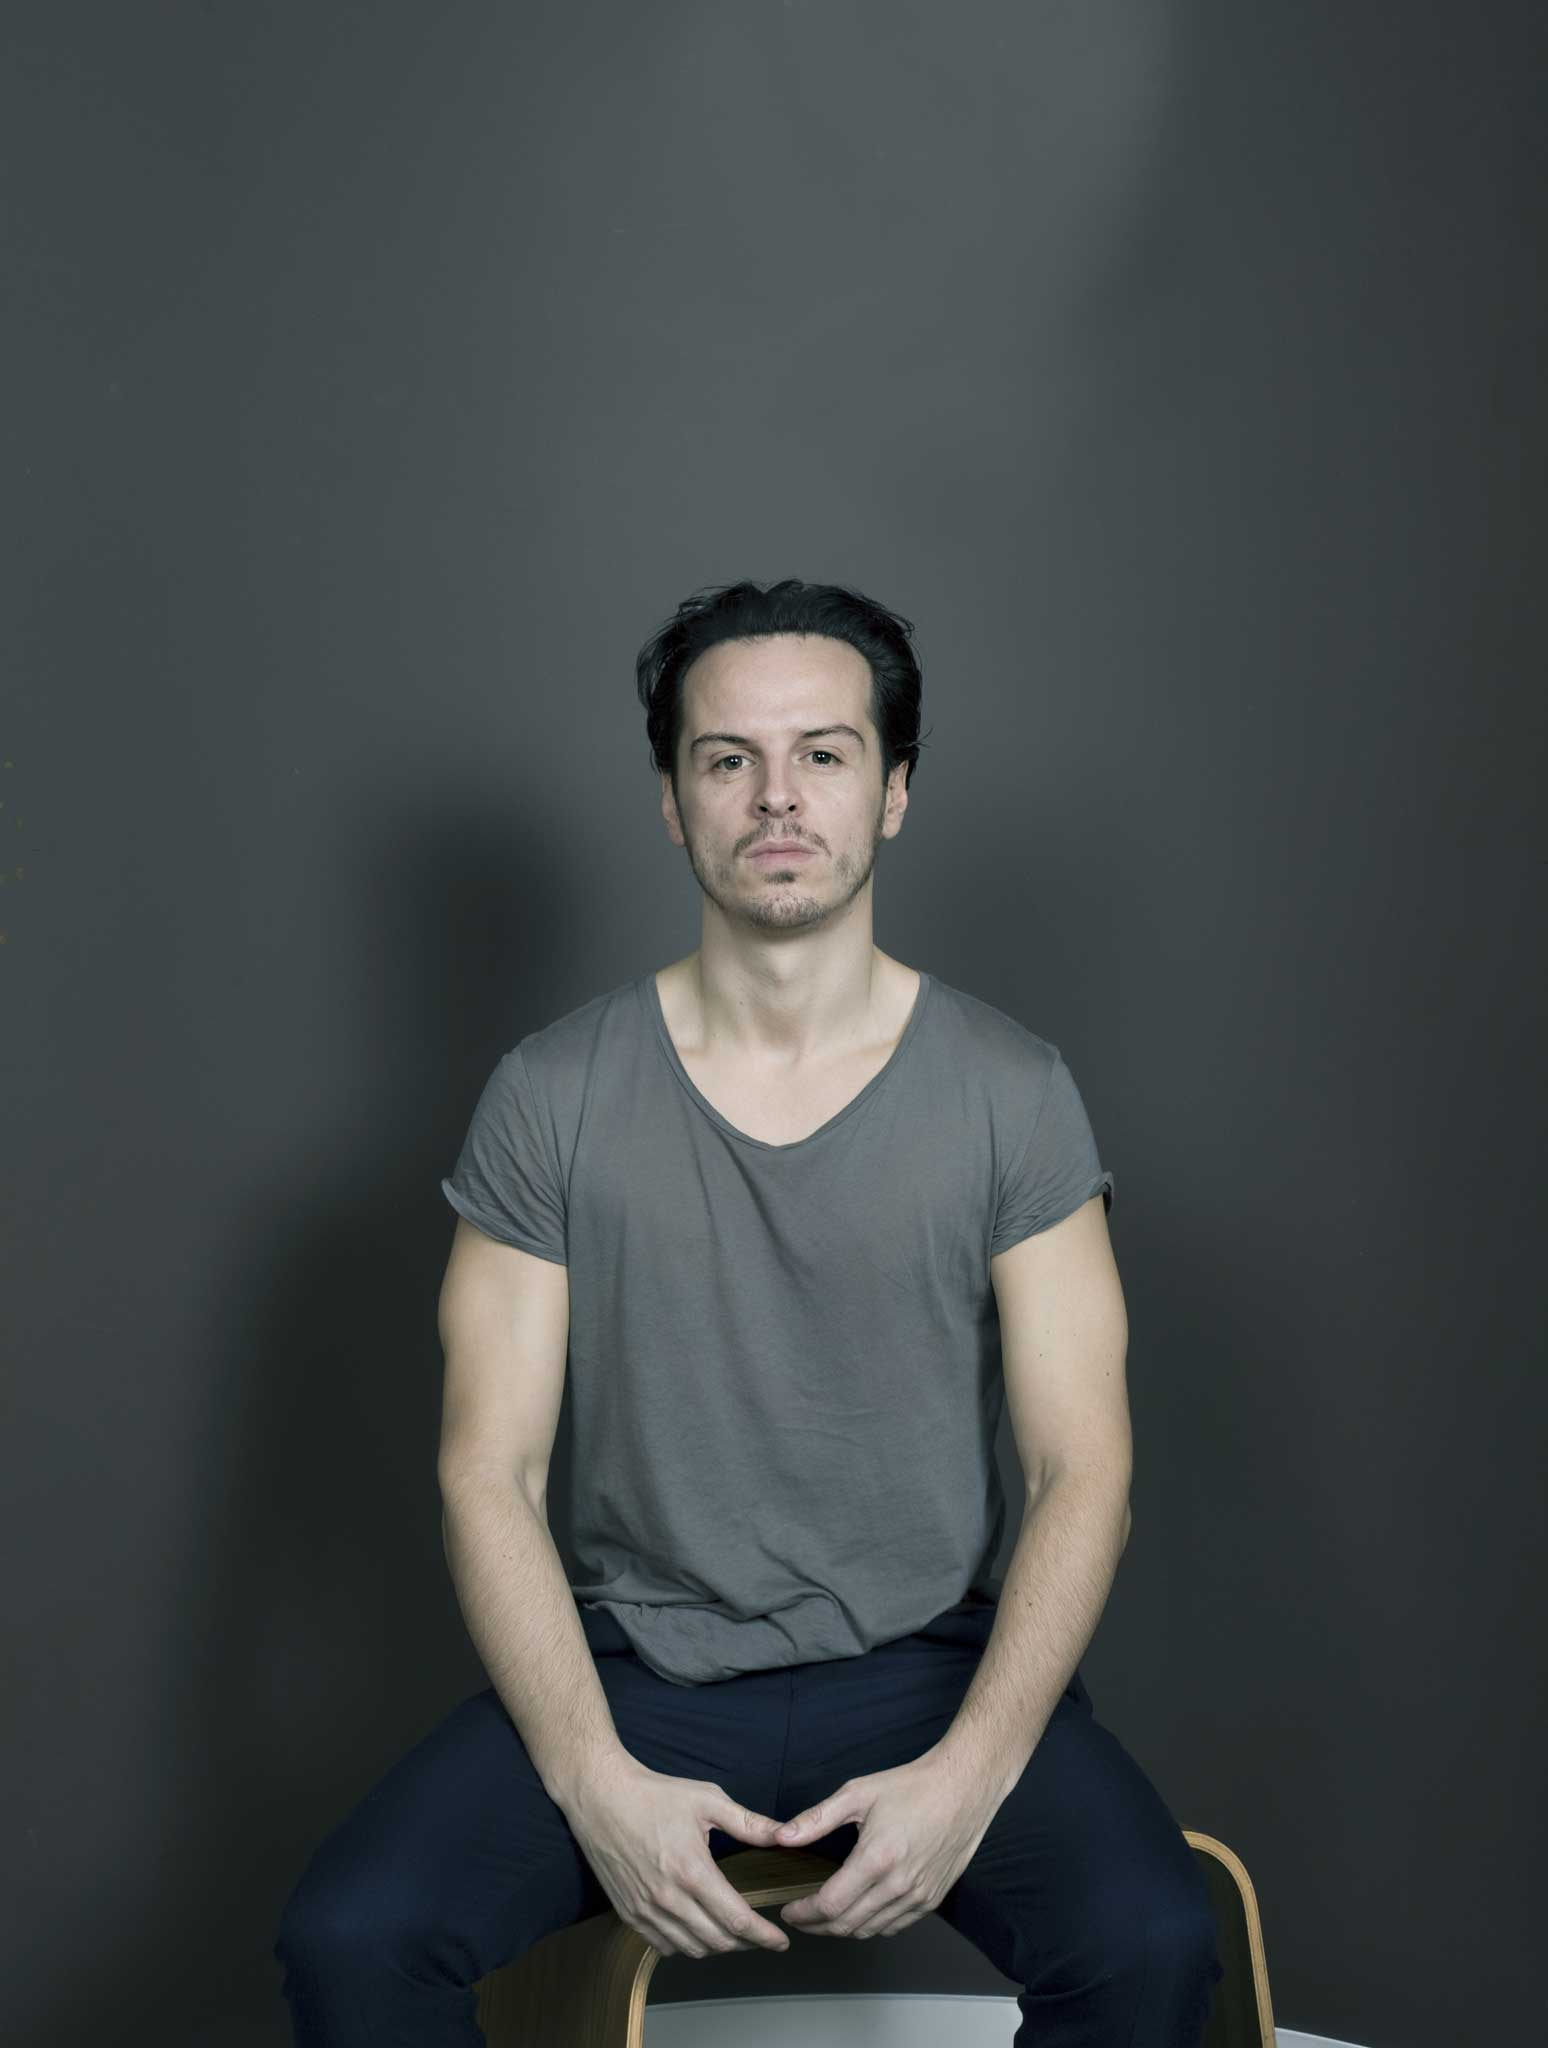 andrew scott height